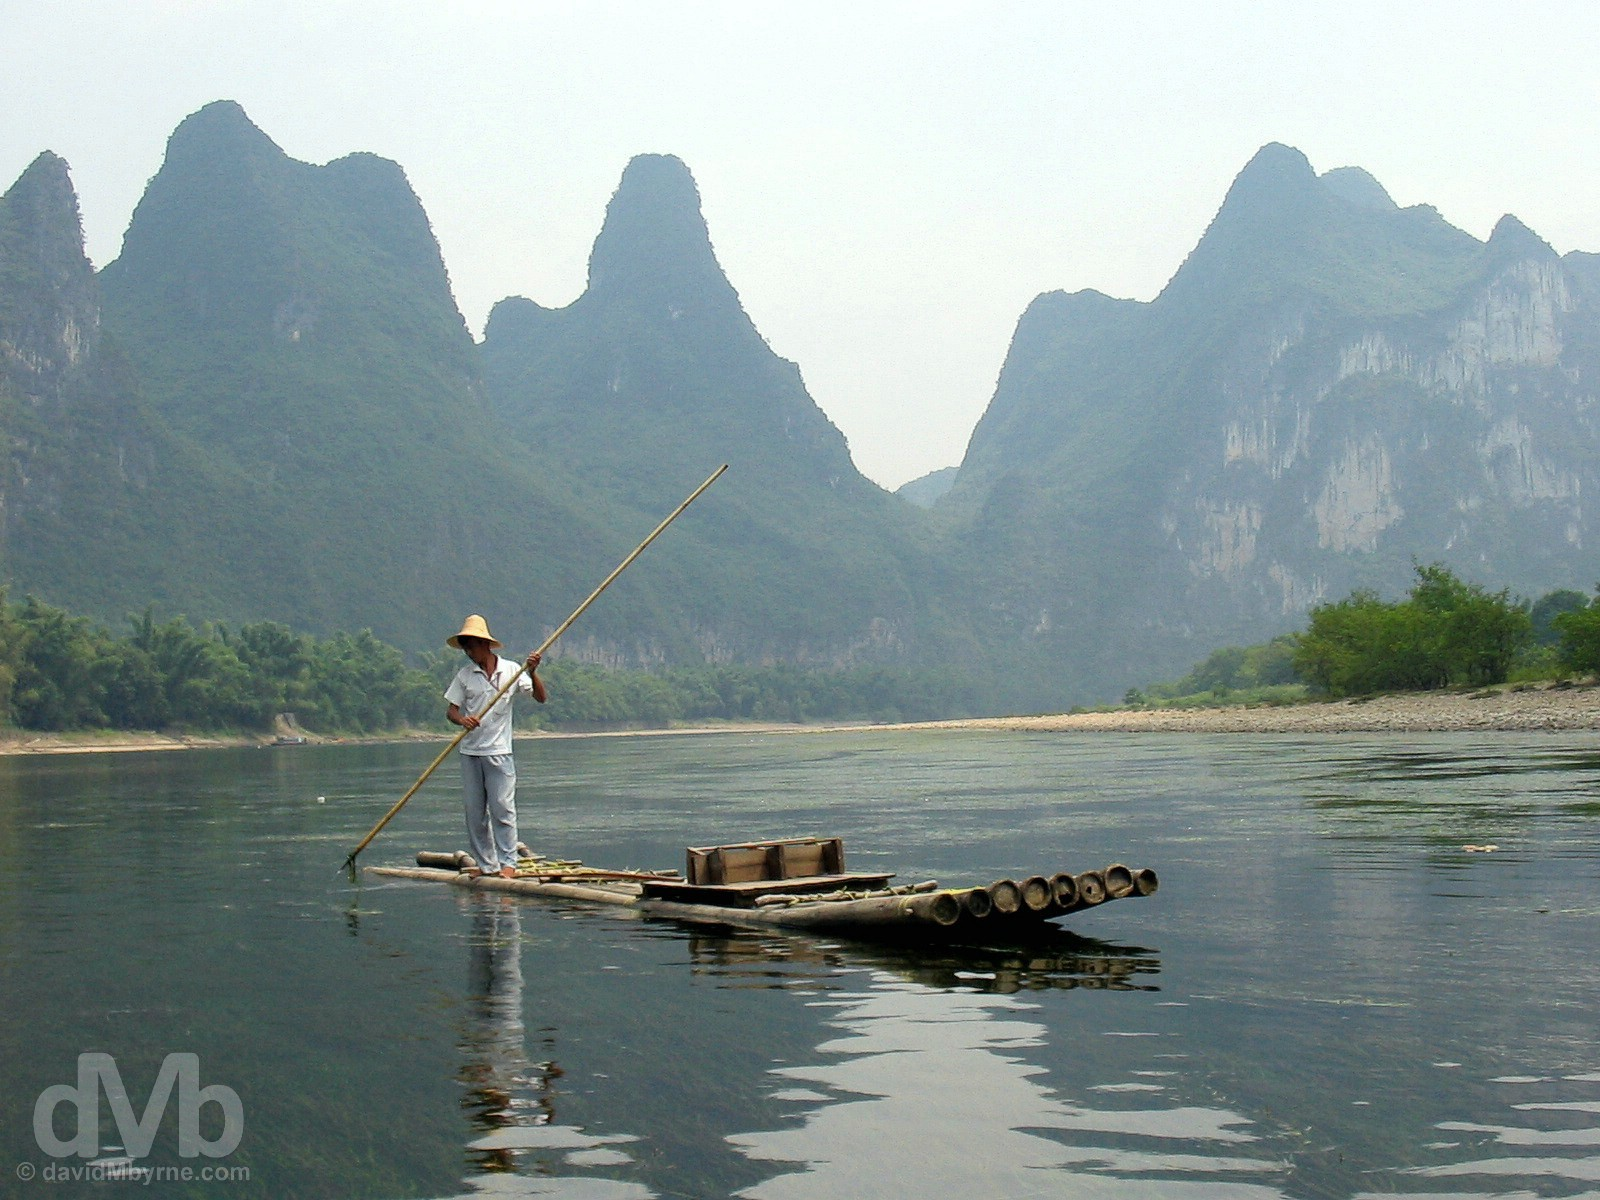 Navigating the scenic Li River outside Yangshou in Guangxi Province, Southern China. September 13, 2004.